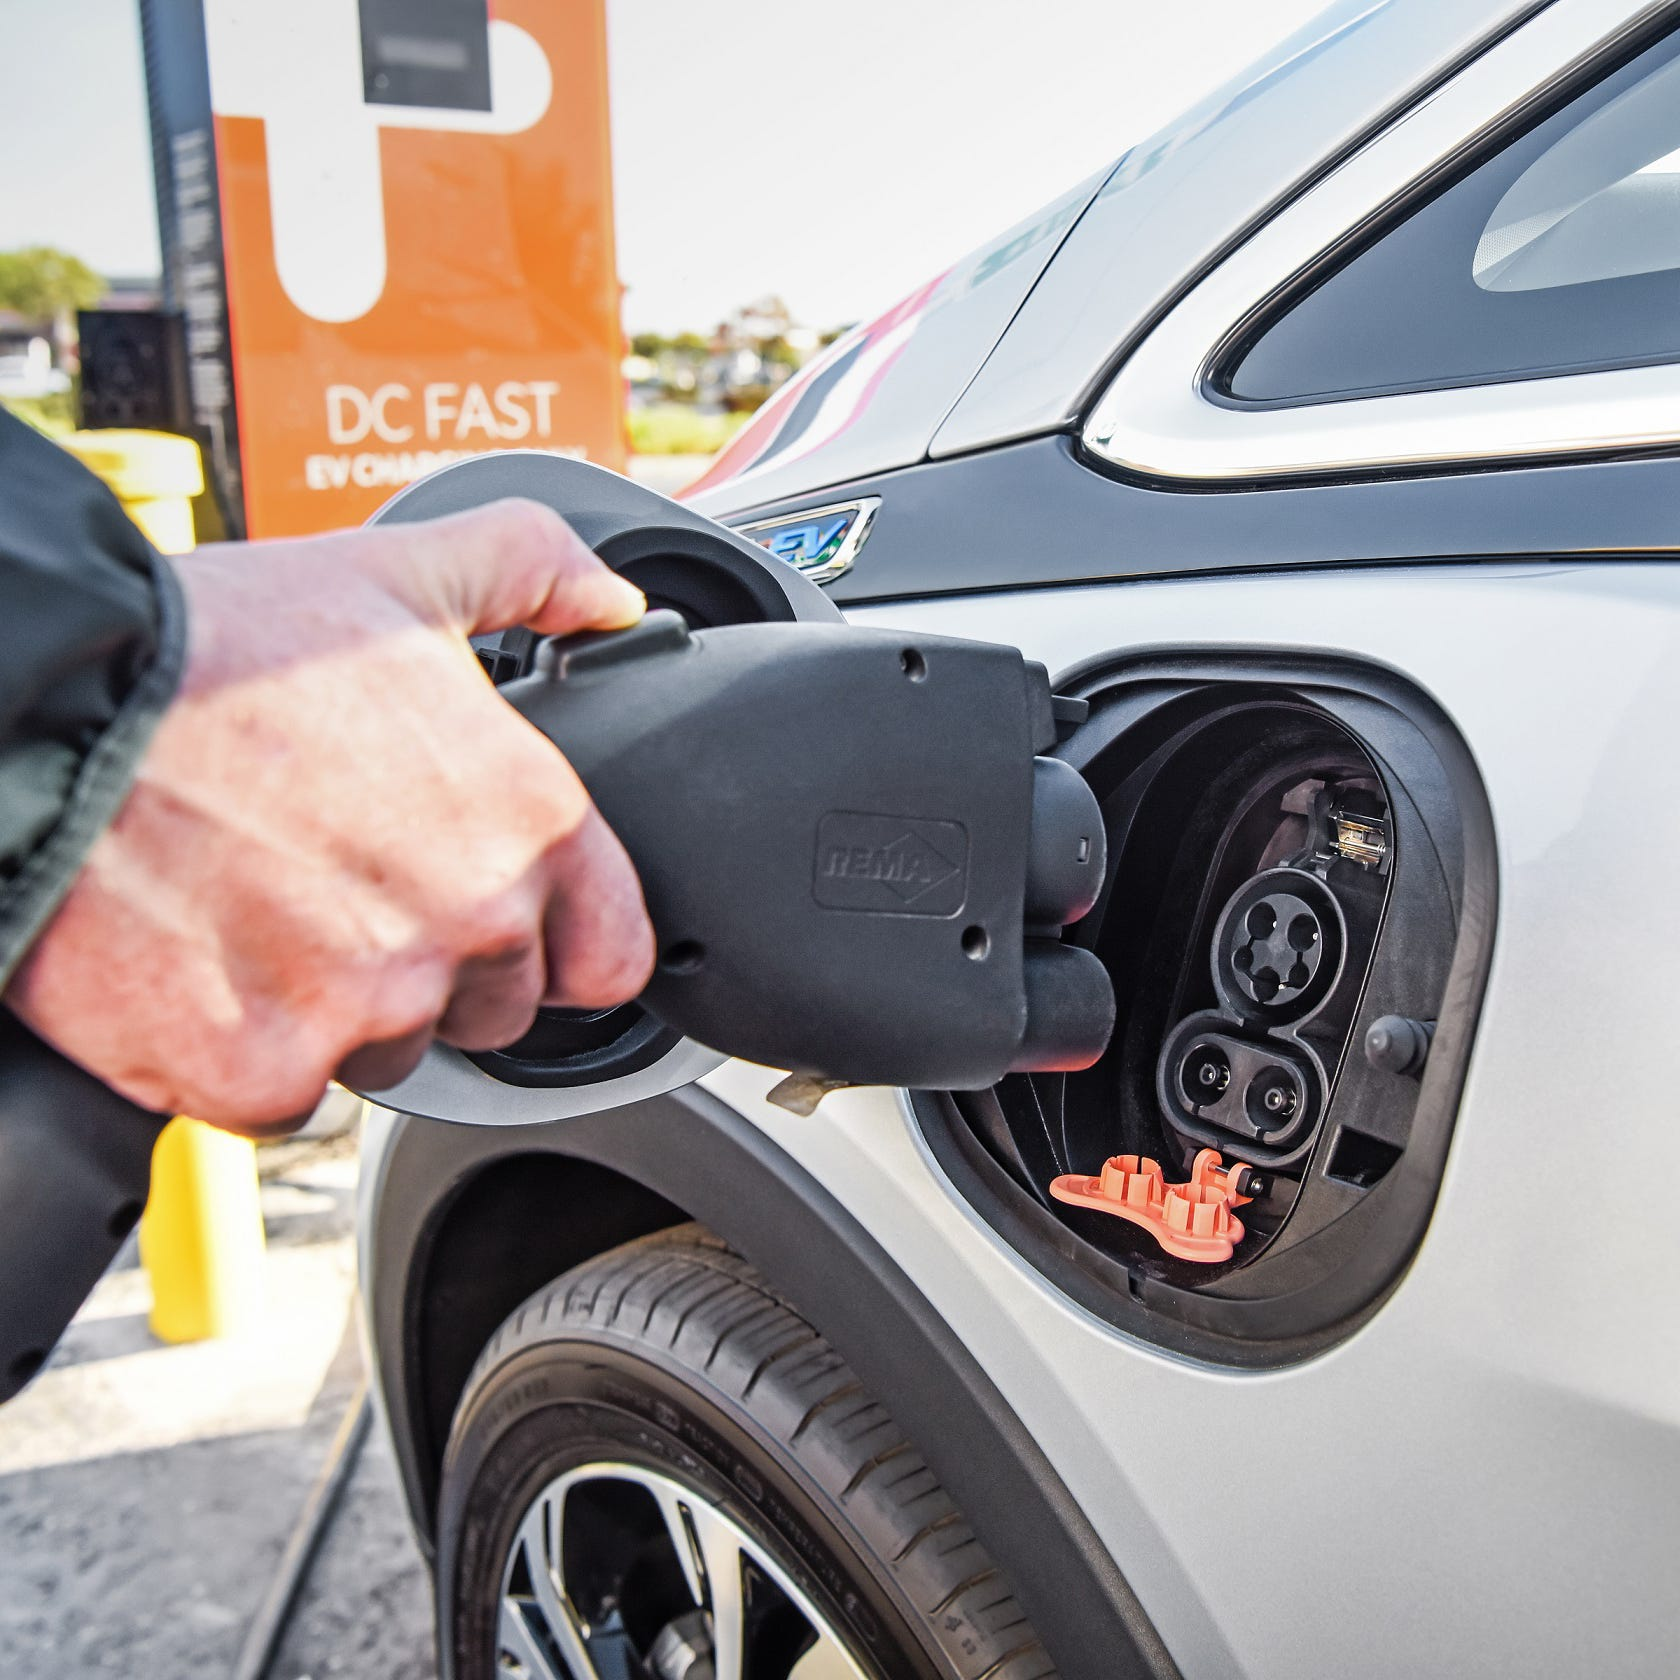 Opinion: Don't extend electric vehicle tax credit